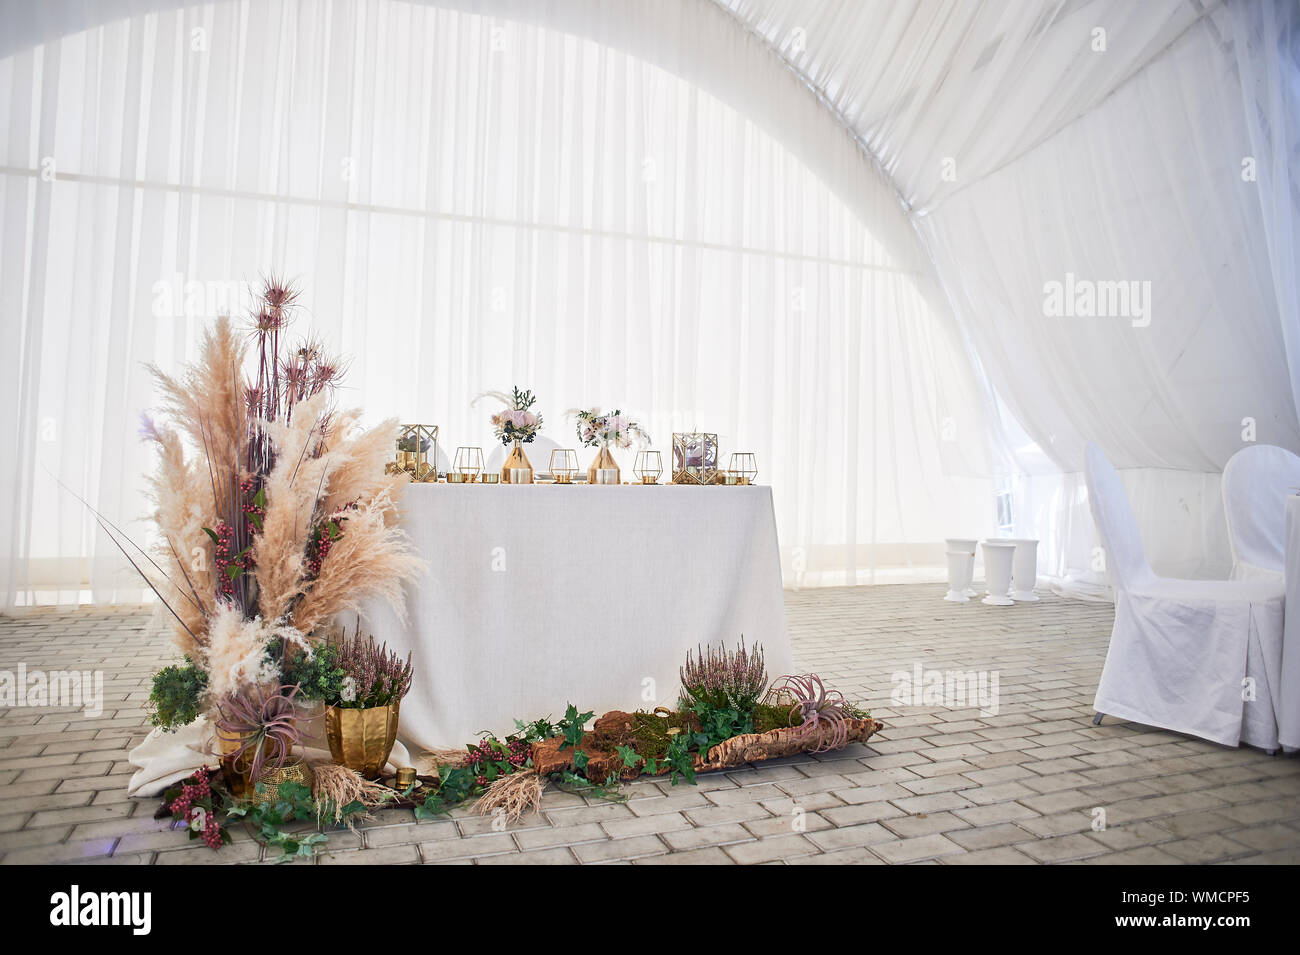 Wedding Decoration In Boho Style Light Colors In The Tent